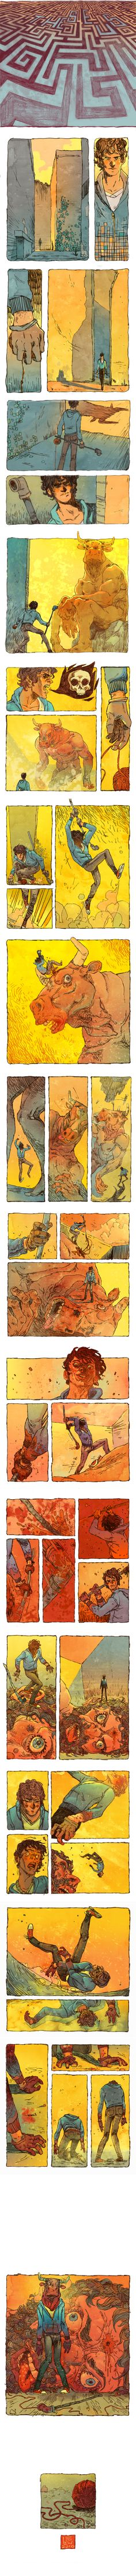 THESEUS: FULL COMIC by ~JakeWyatt on deviantART